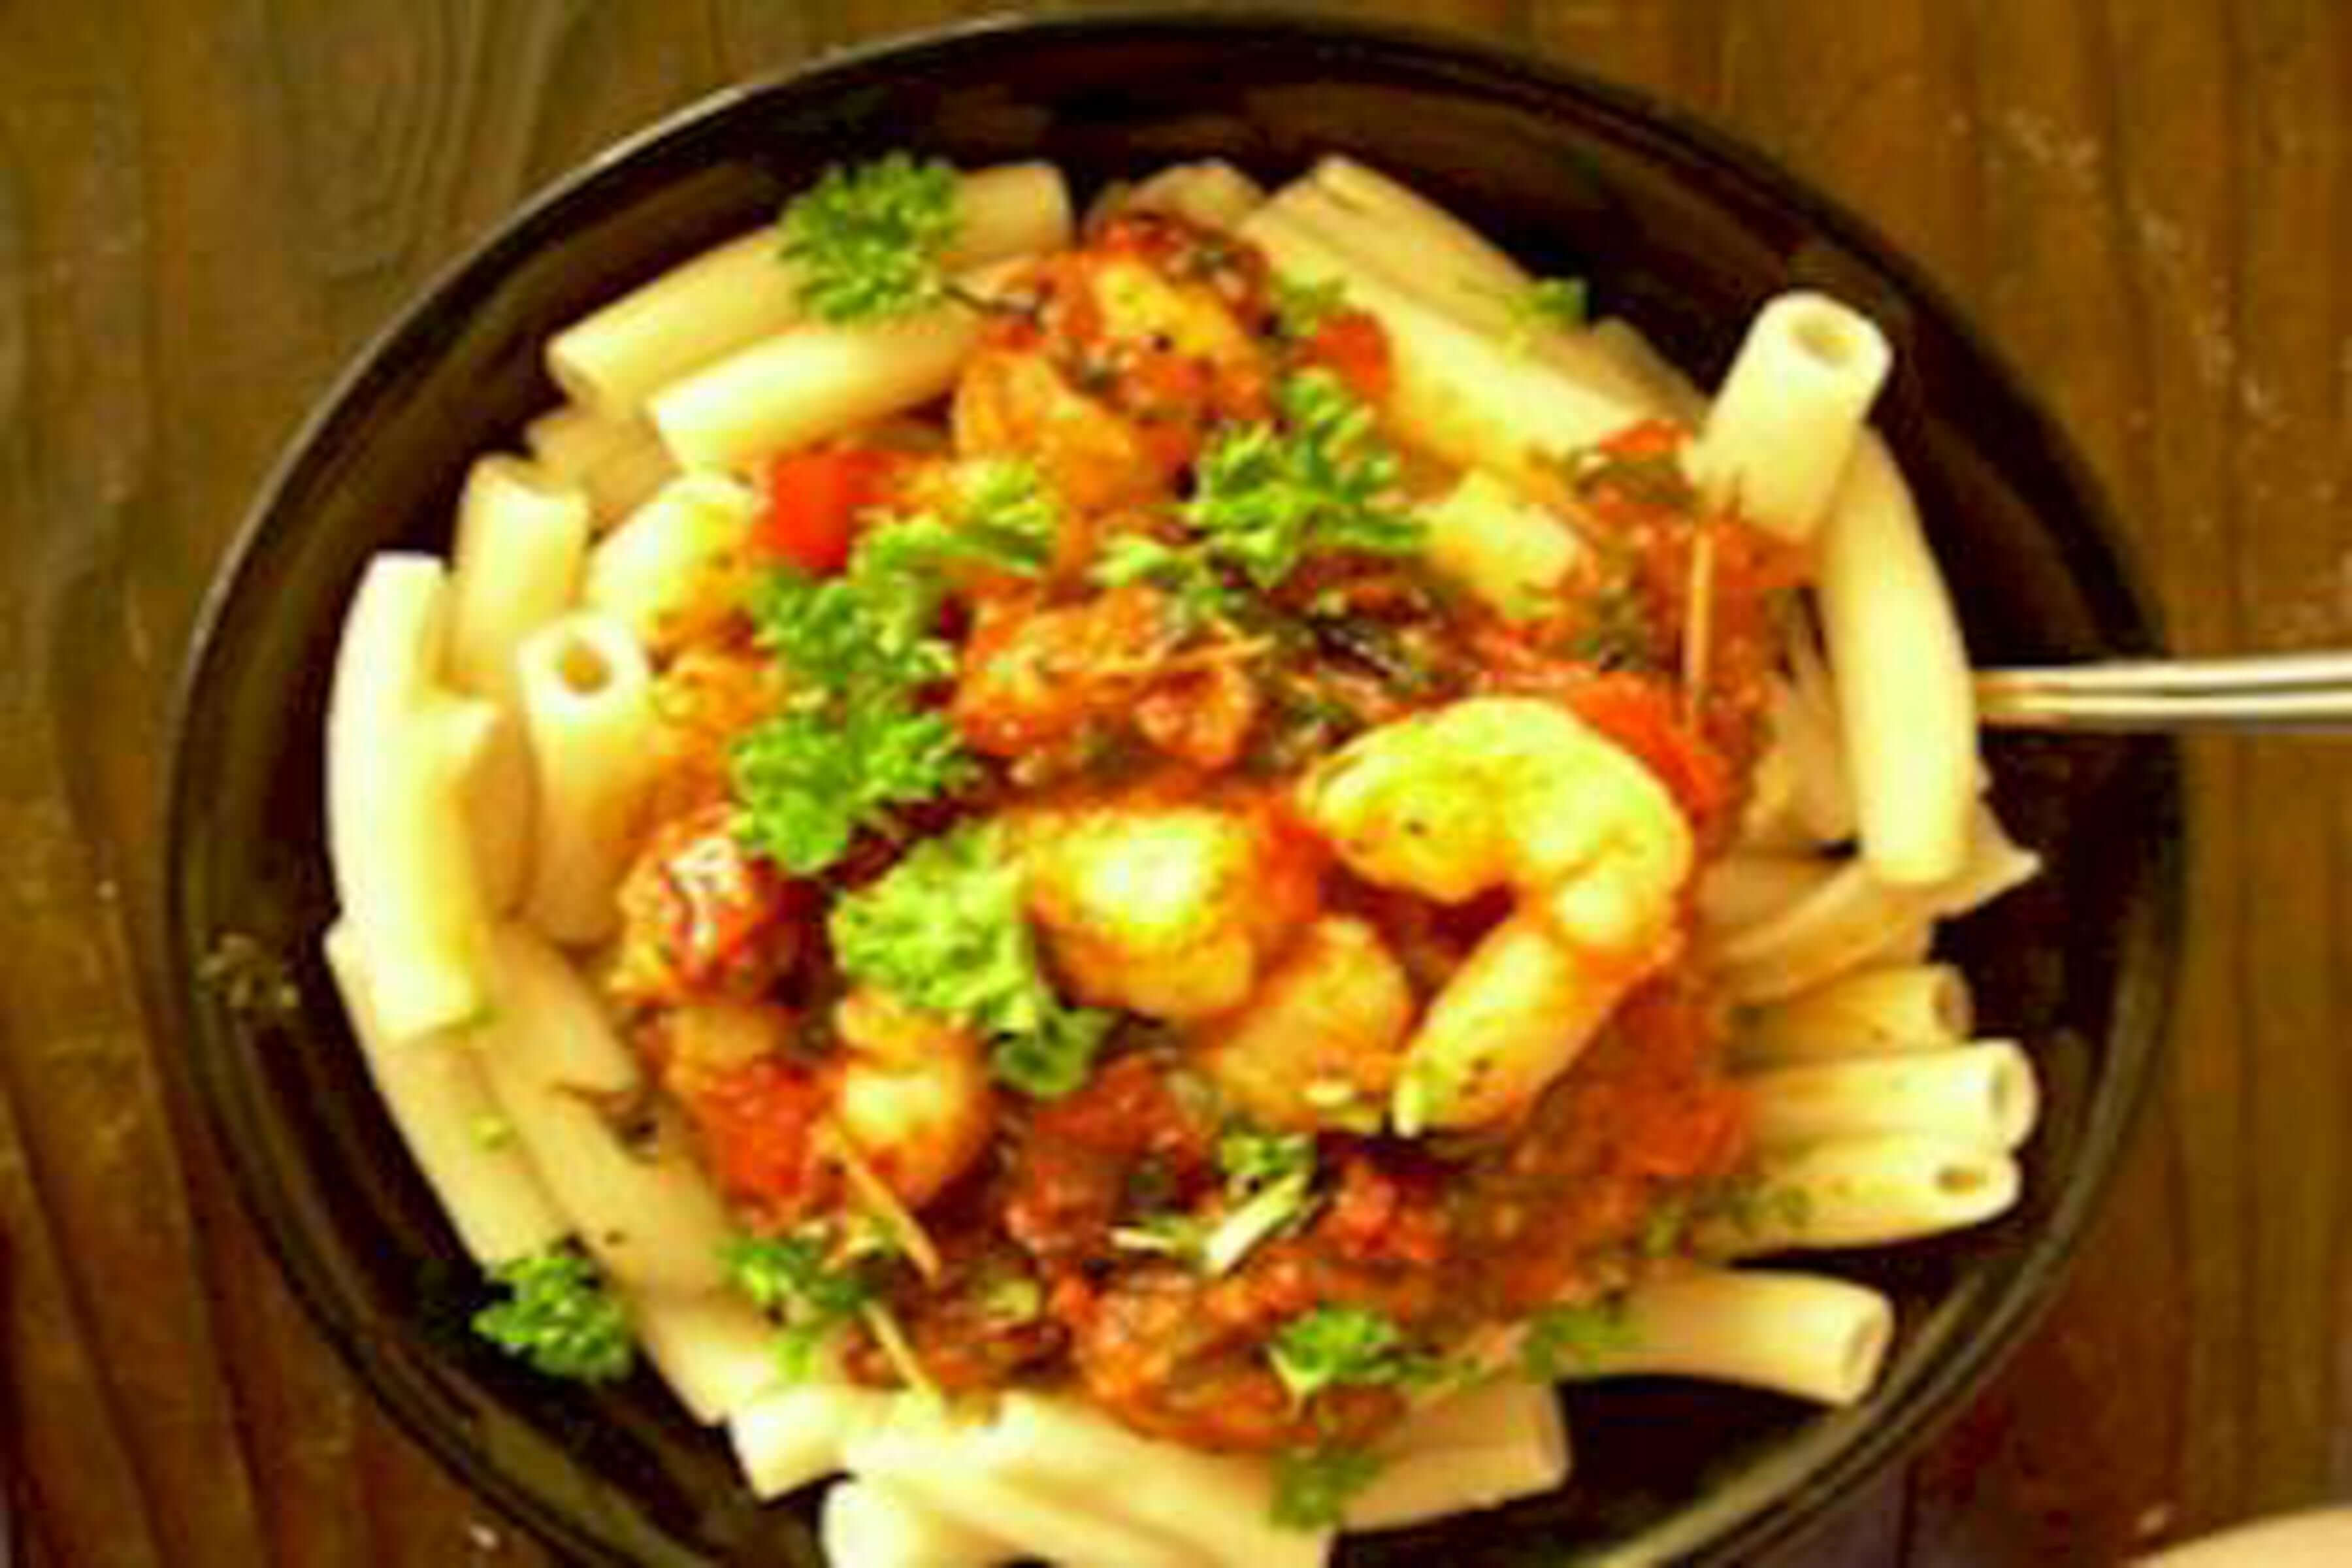 Spicy Penne Pasta And Shrimp With Tomato Sauce Recipe | RecipeSavants.com